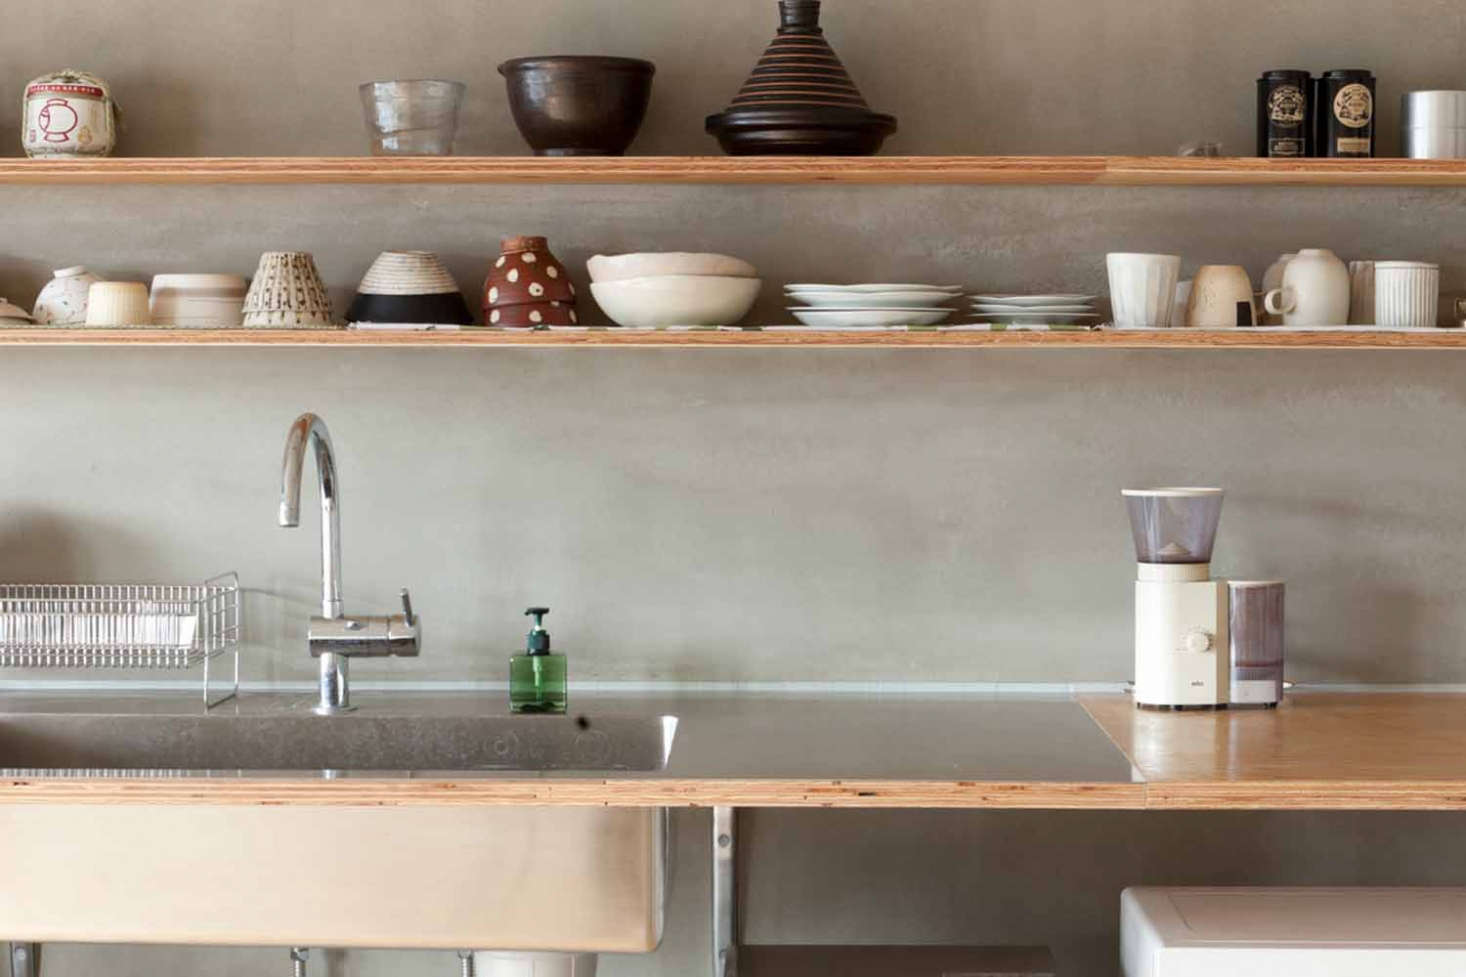 Table of Contents: The Deconstructed Kitchen